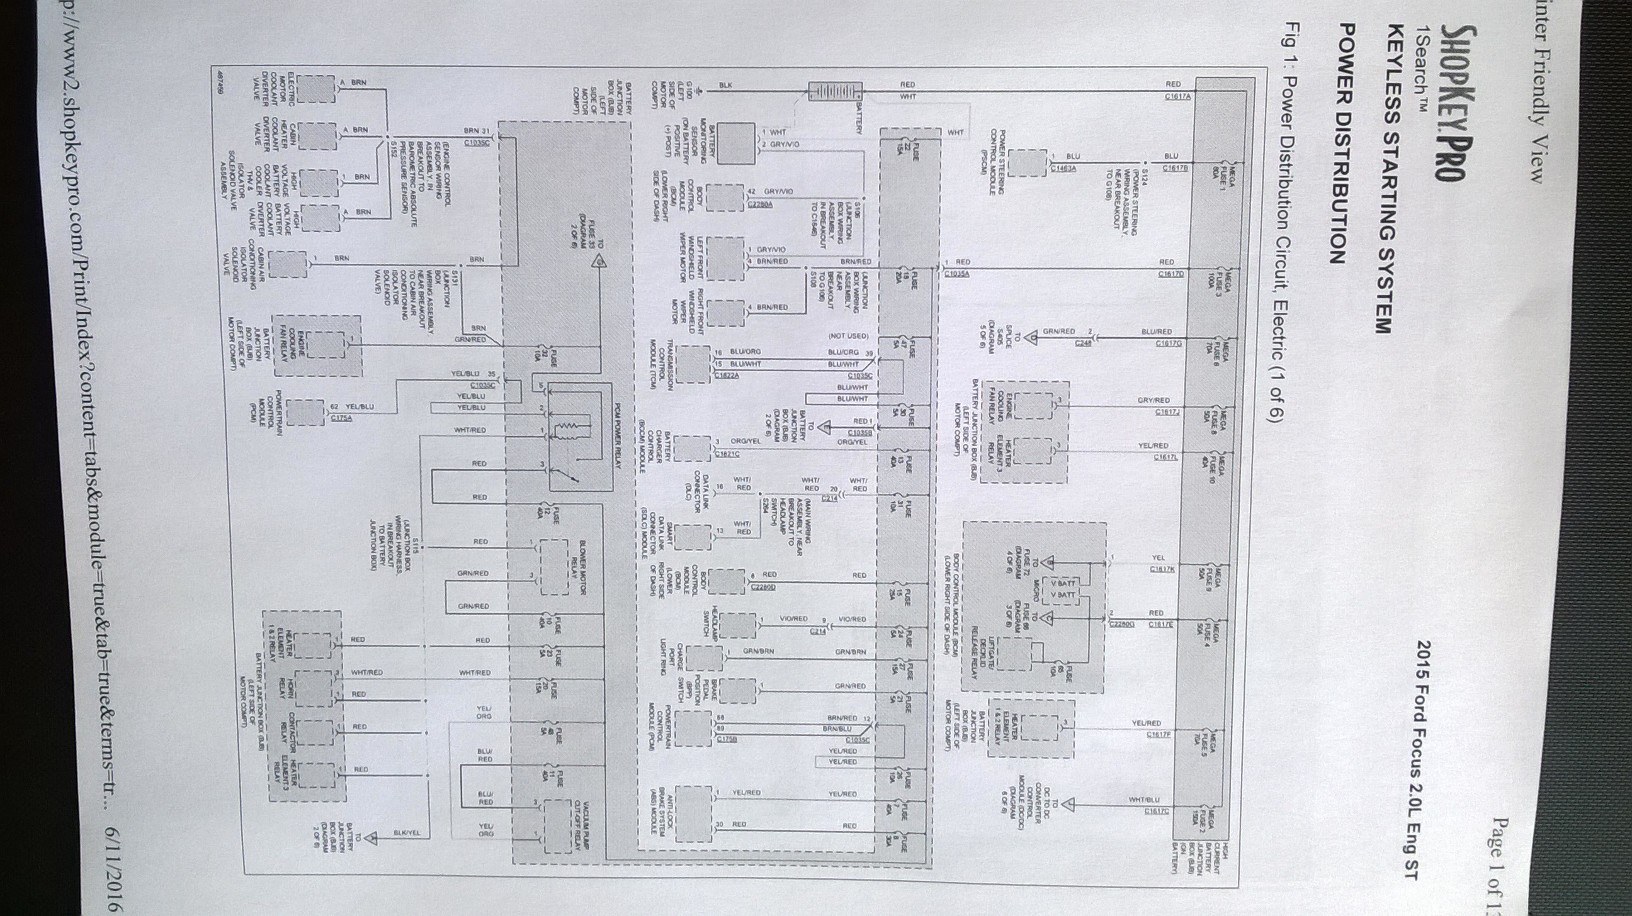 2015 Focus St3 Wiring Diagram Ford Starting System Name Wp 20160611 005 Views 664 Size 4501 Kb